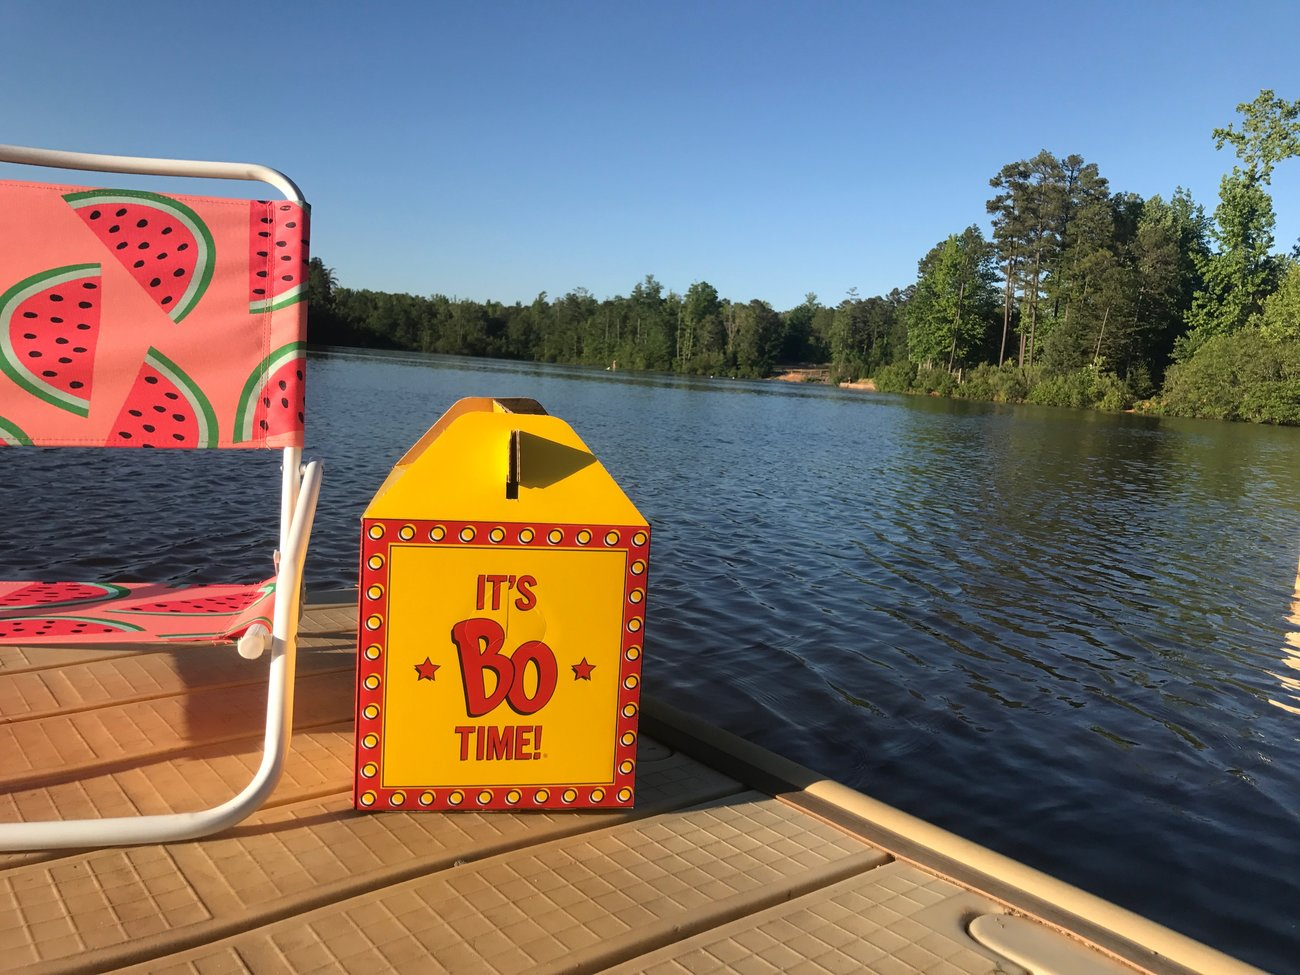 We've teamed up with Bojangles' and Morningstar Marinas Kings Point to get you out on the water CLT style, with a sweet ride and an even sweeter beverage